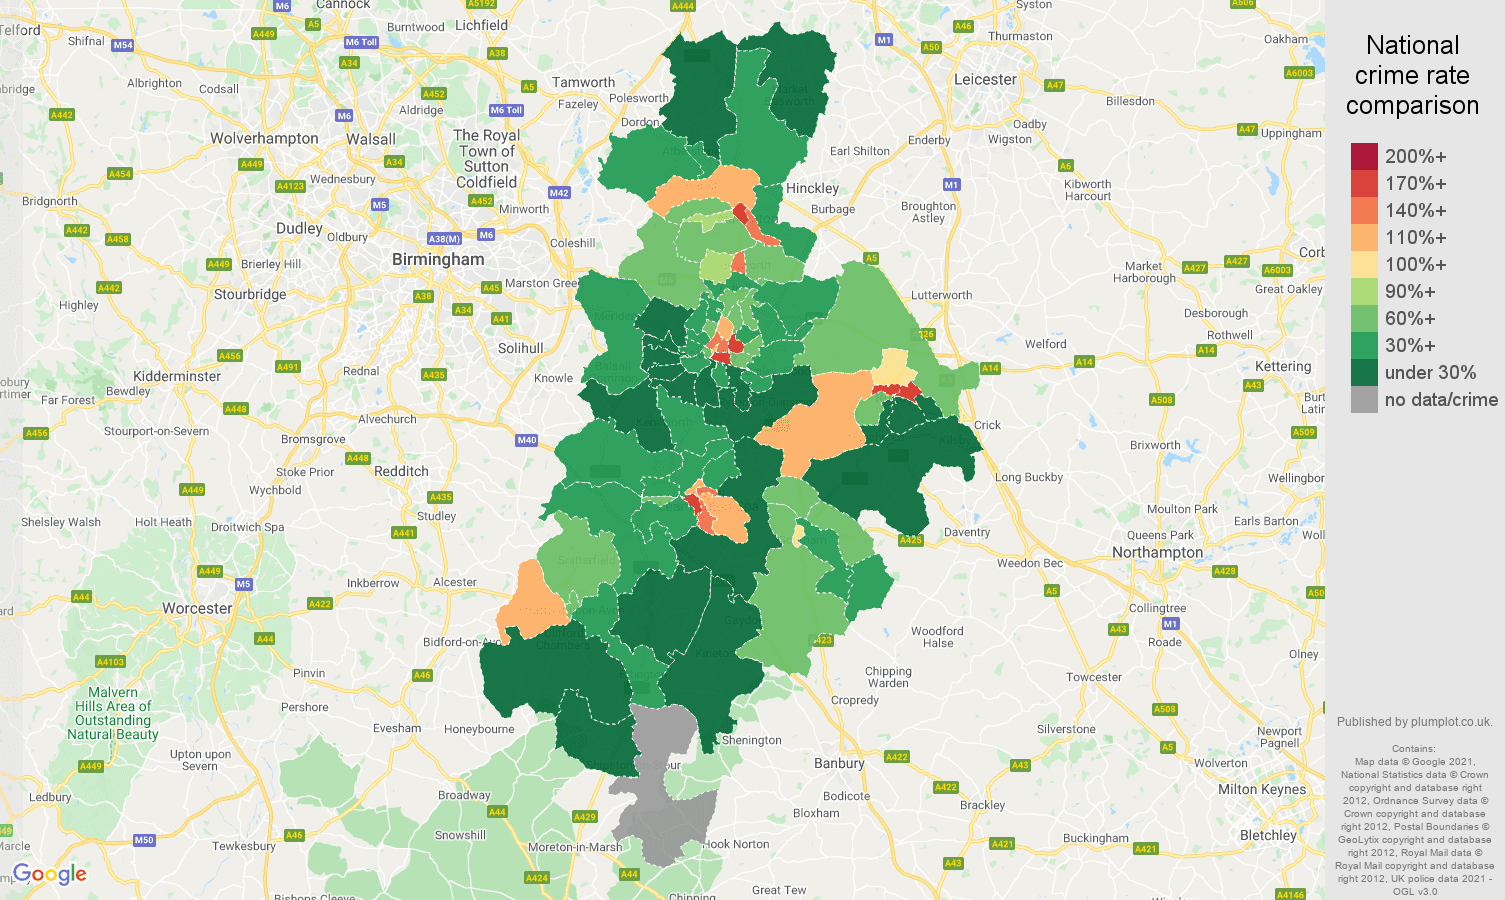 Coventry drugs crime rate comparison map